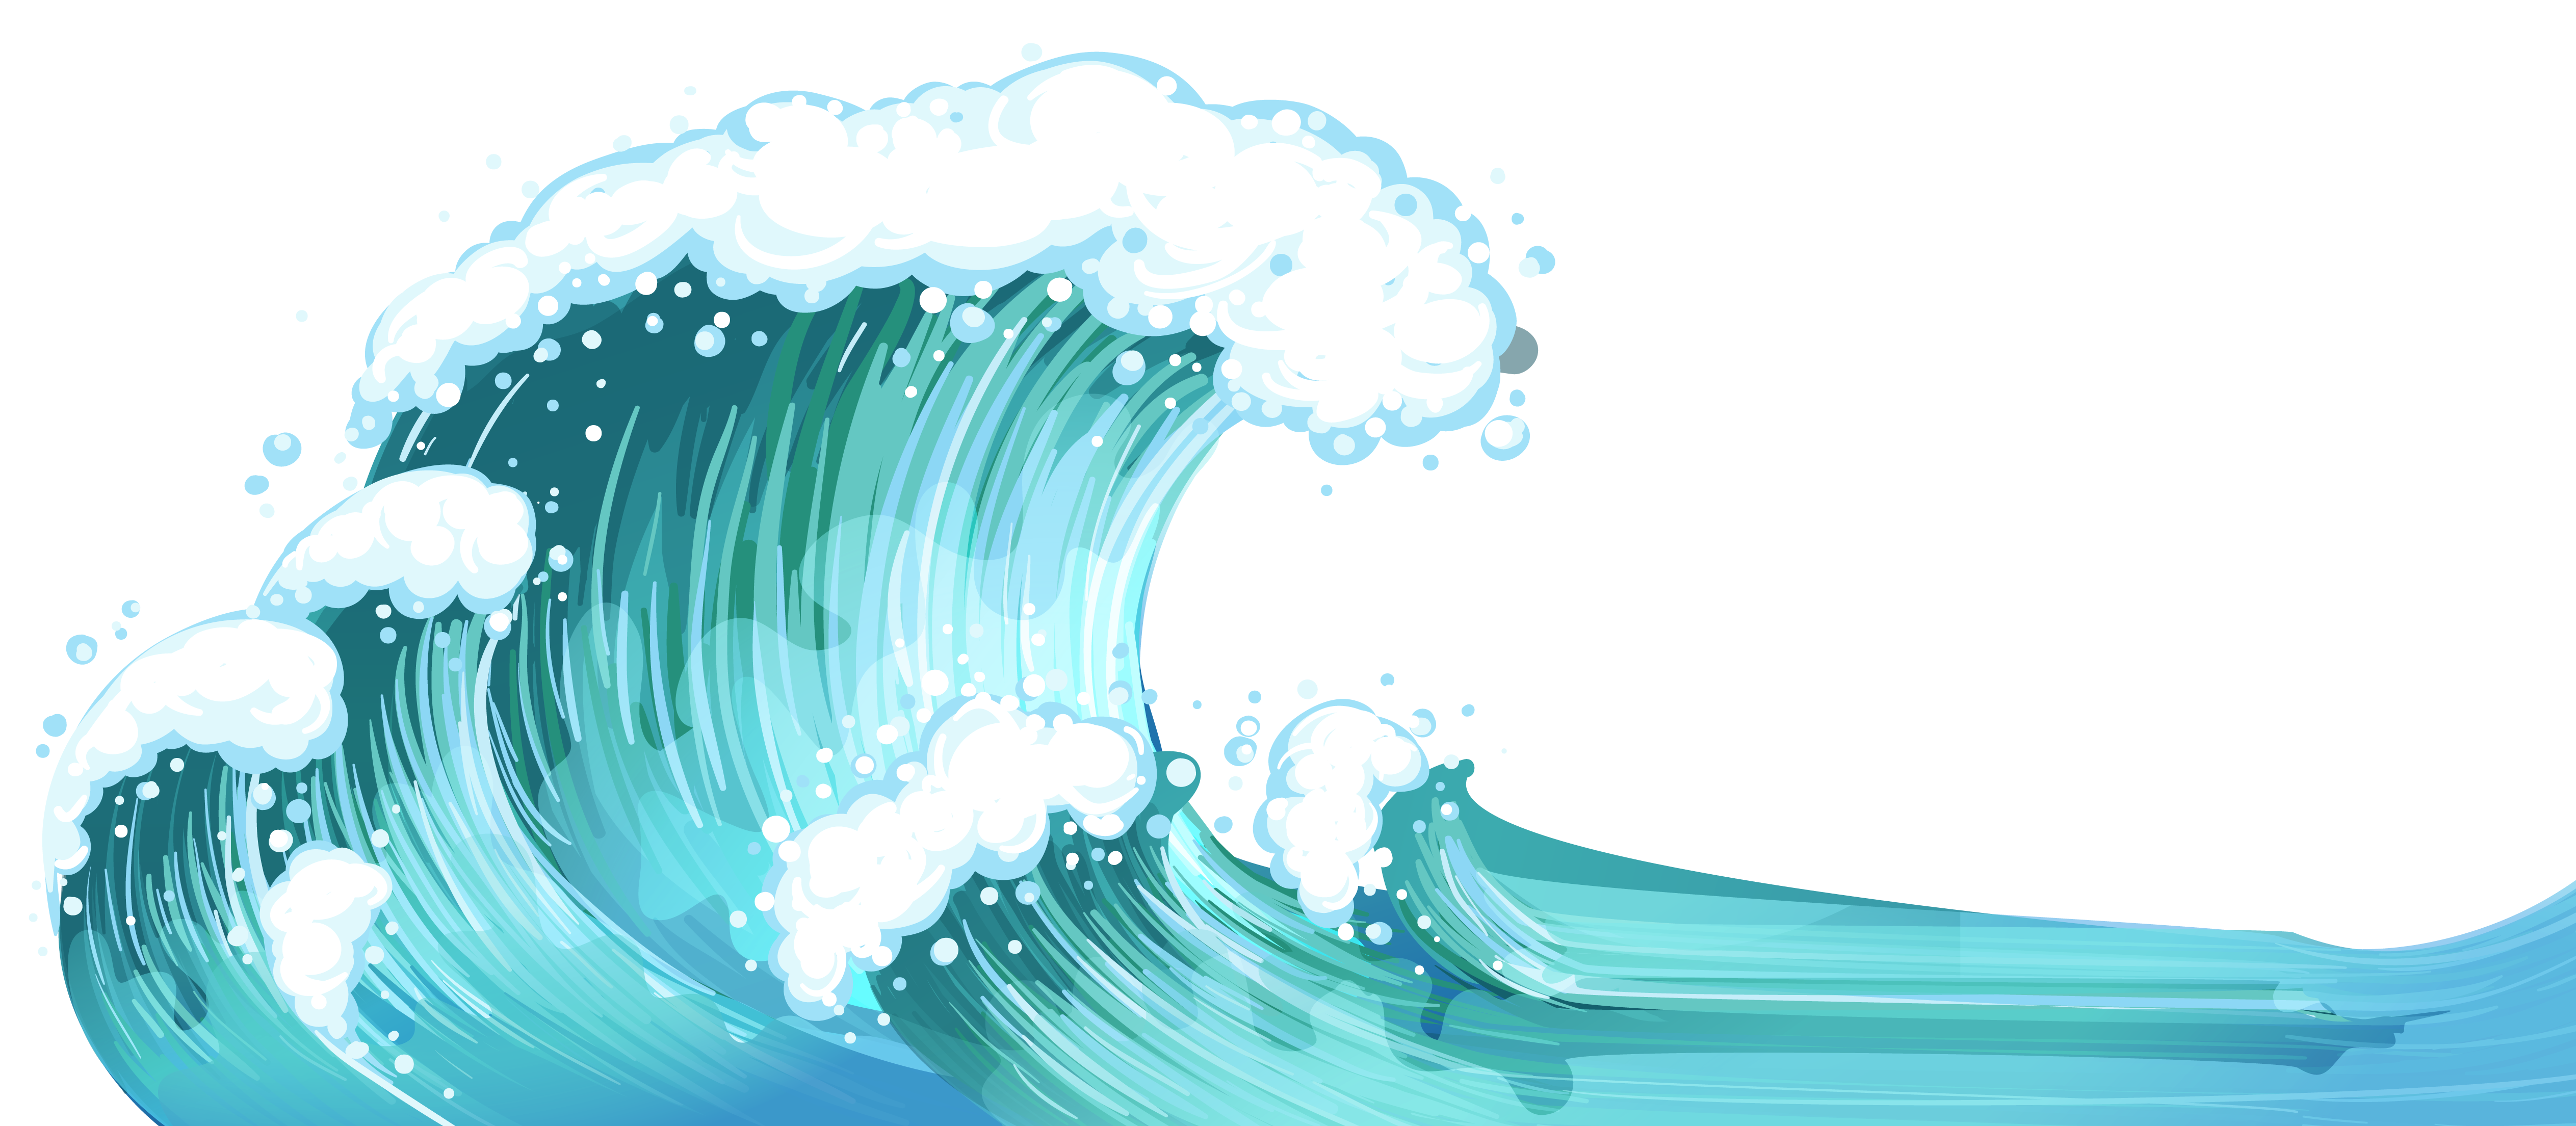 Waves Clipart - Waves PNG HD